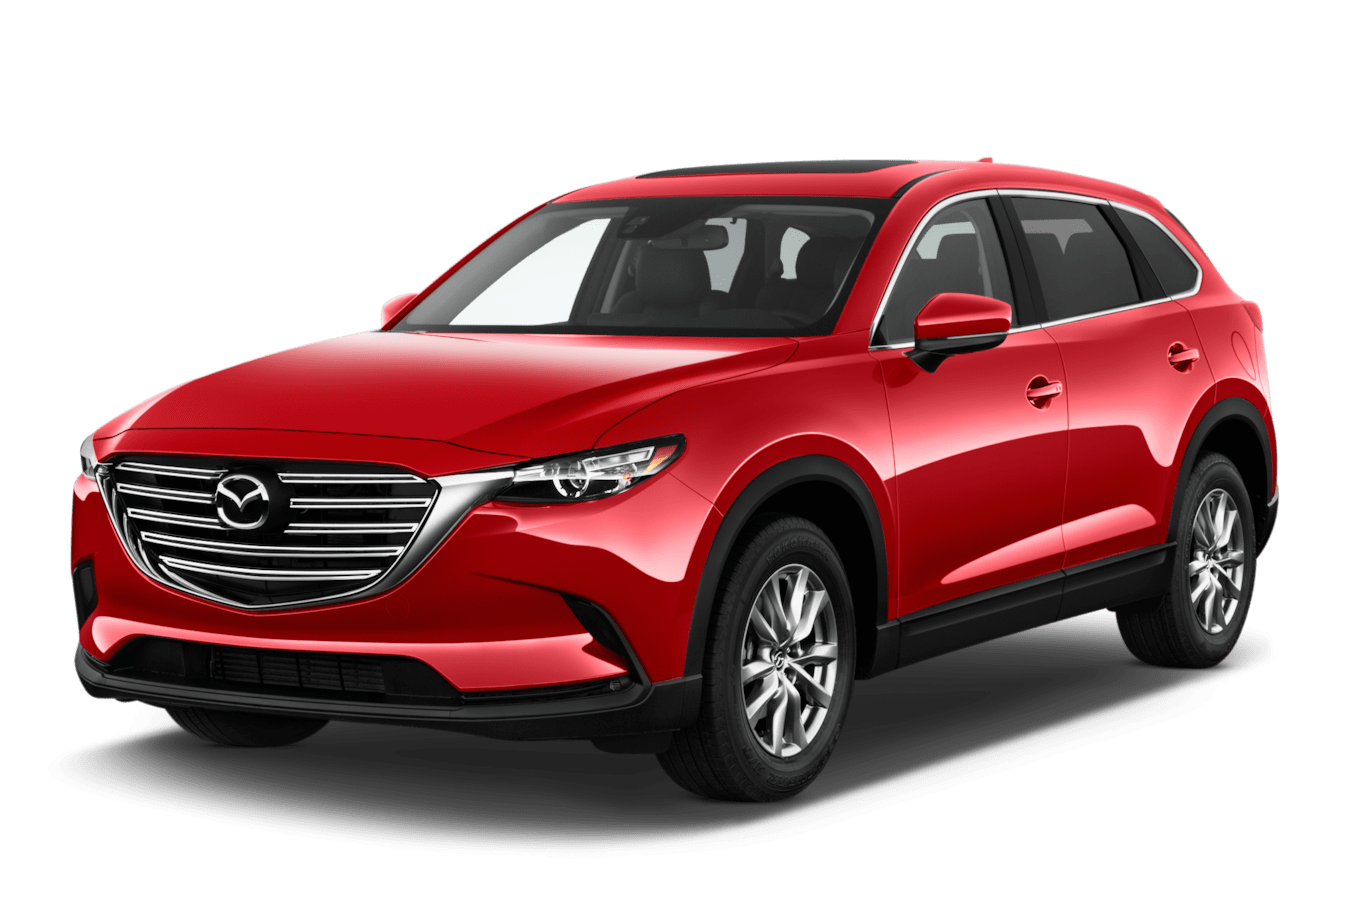 2016 Mazda Cx9 Reviews And Rating  Motor Trend